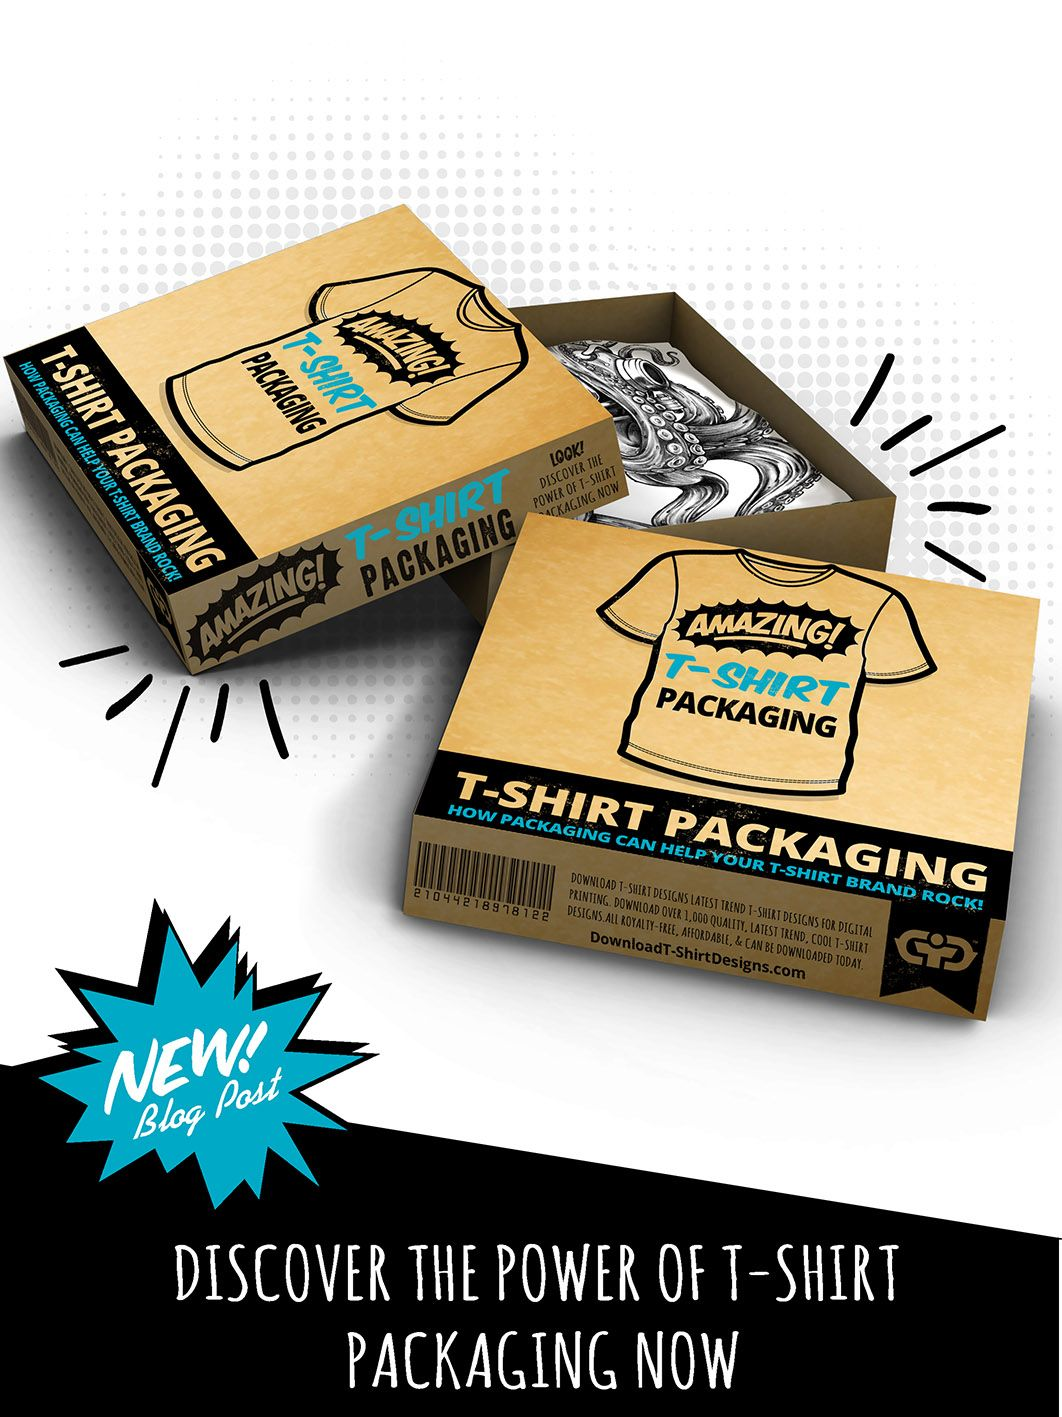 Custom t shirt packaging ideas | How to Start a Clothing Company ...